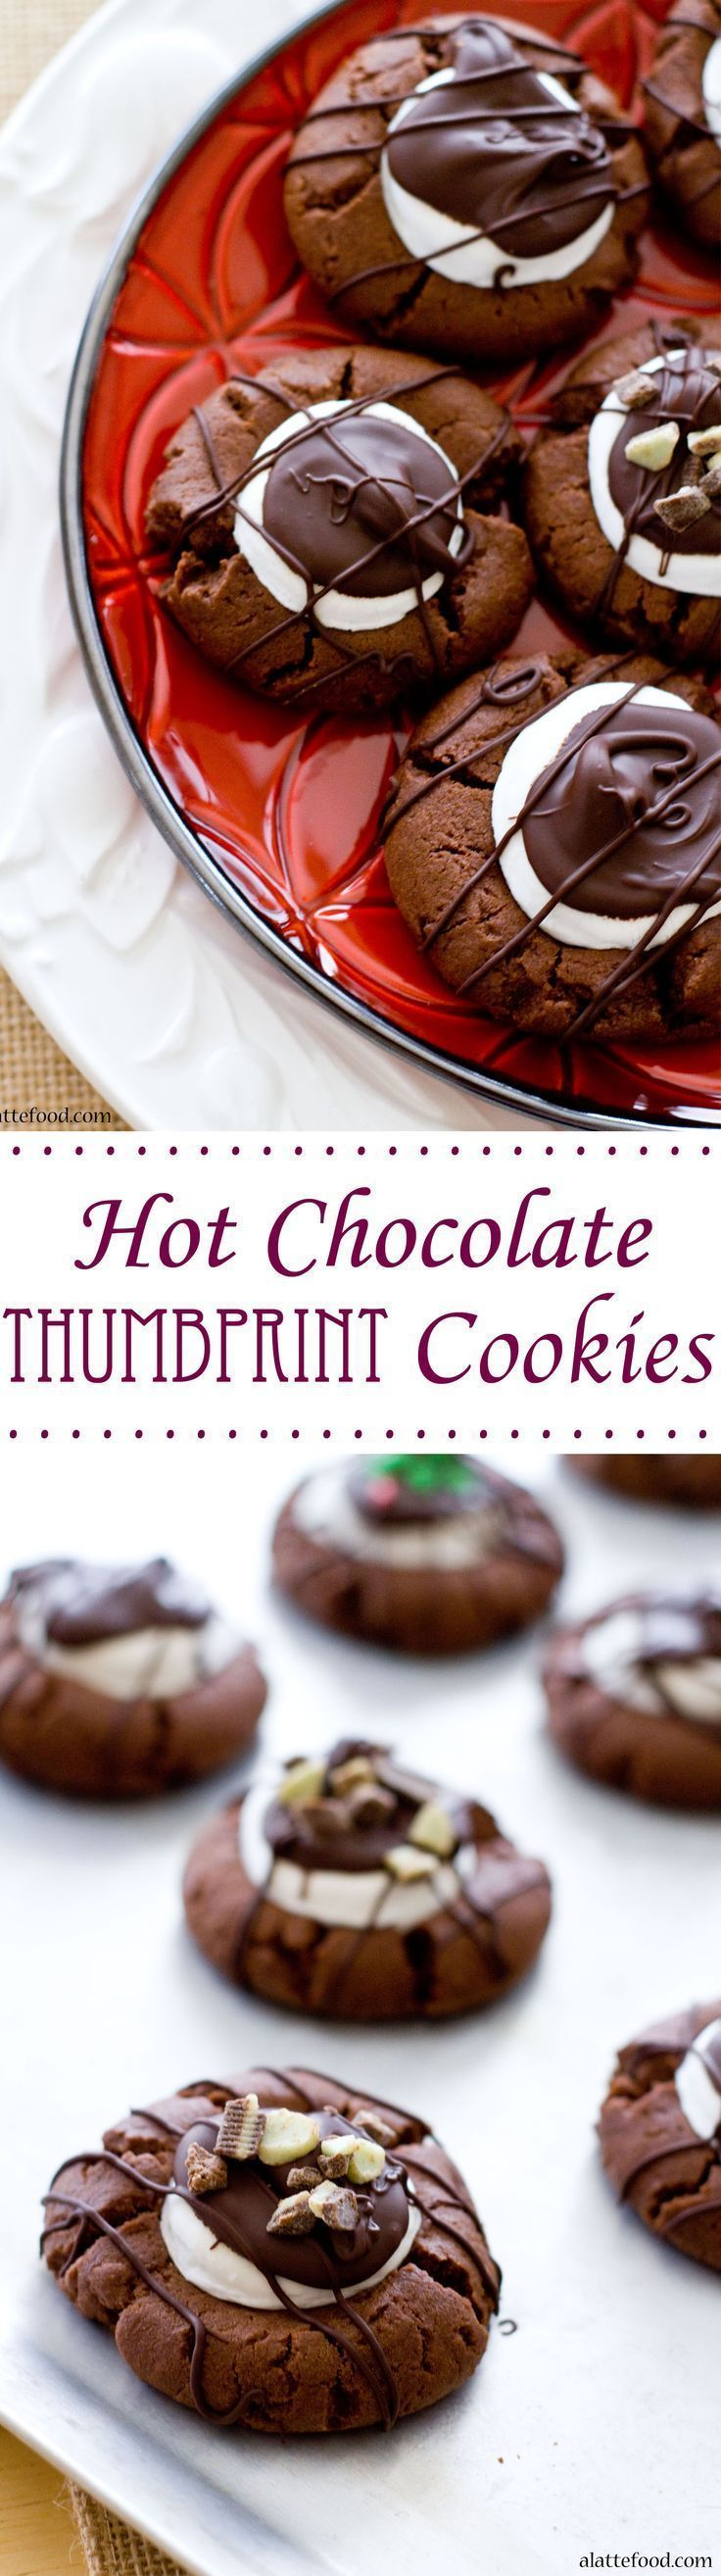 Hot Chocolate Thumbprint Cookies | All the flavors of hot cocoa right in one cookie! | www.alattefood.com/